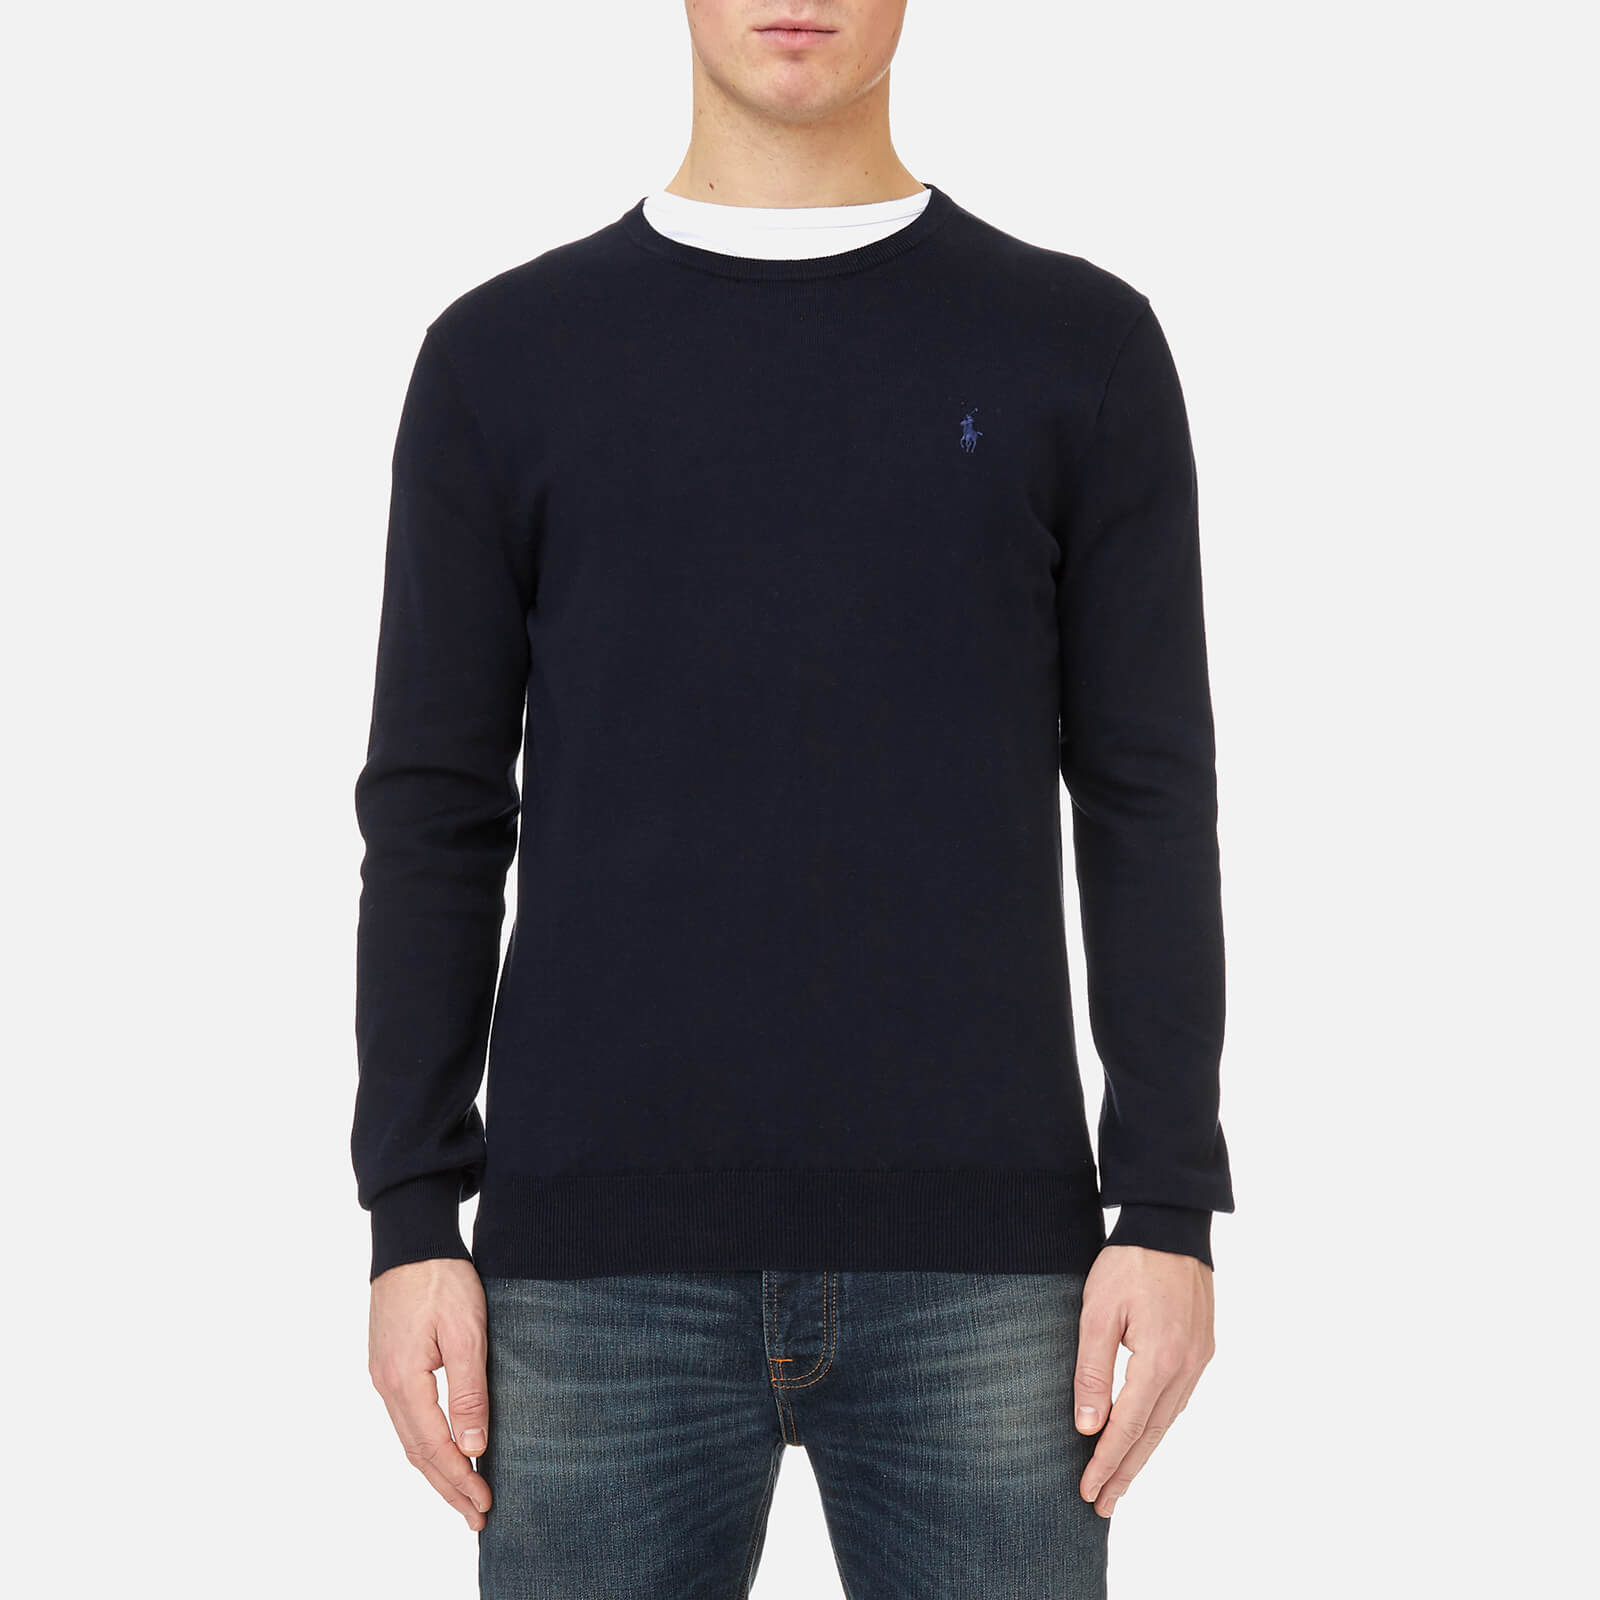 86d762d074f9f Polo Ralph Lauren Men s Pima Cotton Knitted Jumper - Navy - Free UK  Delivery over £50